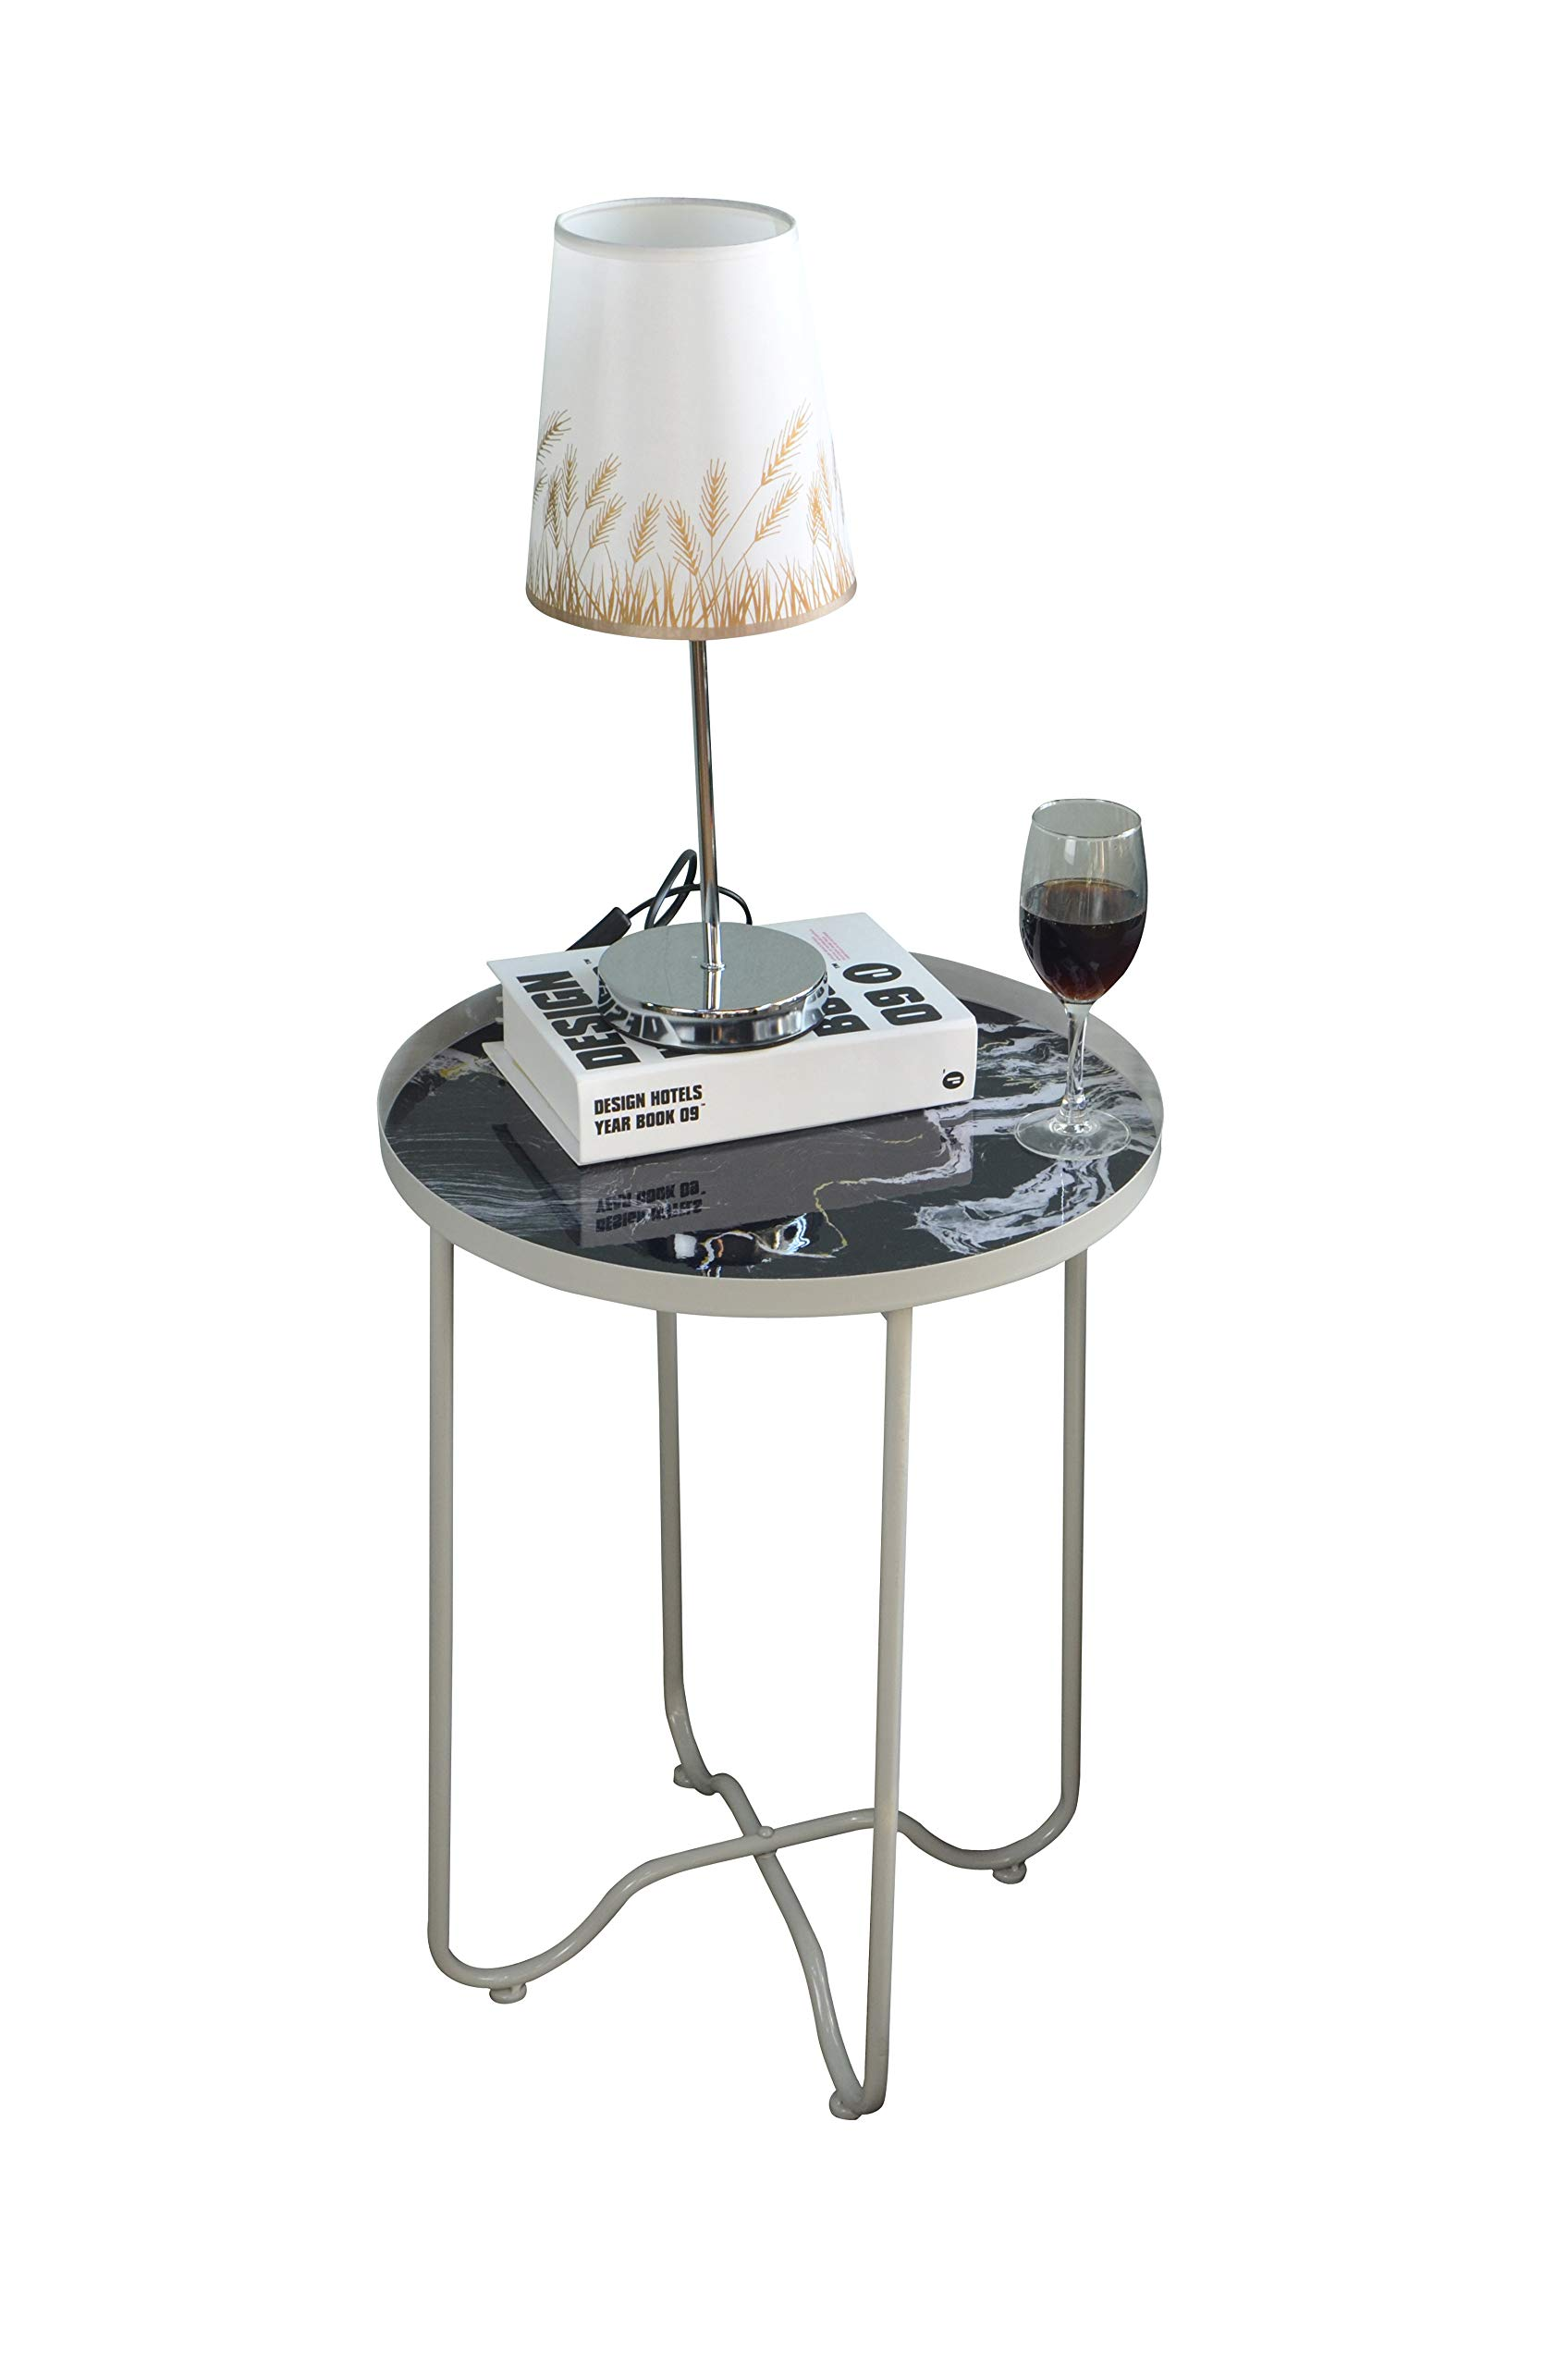 Round Side Table,Metal End Table,Telephone Small Tables for Living Room, Accent Tables, Bedroom Furniture for Small Spaces,White Faux Marble,Grey & Black by AOJEZOR by AOJEZOR